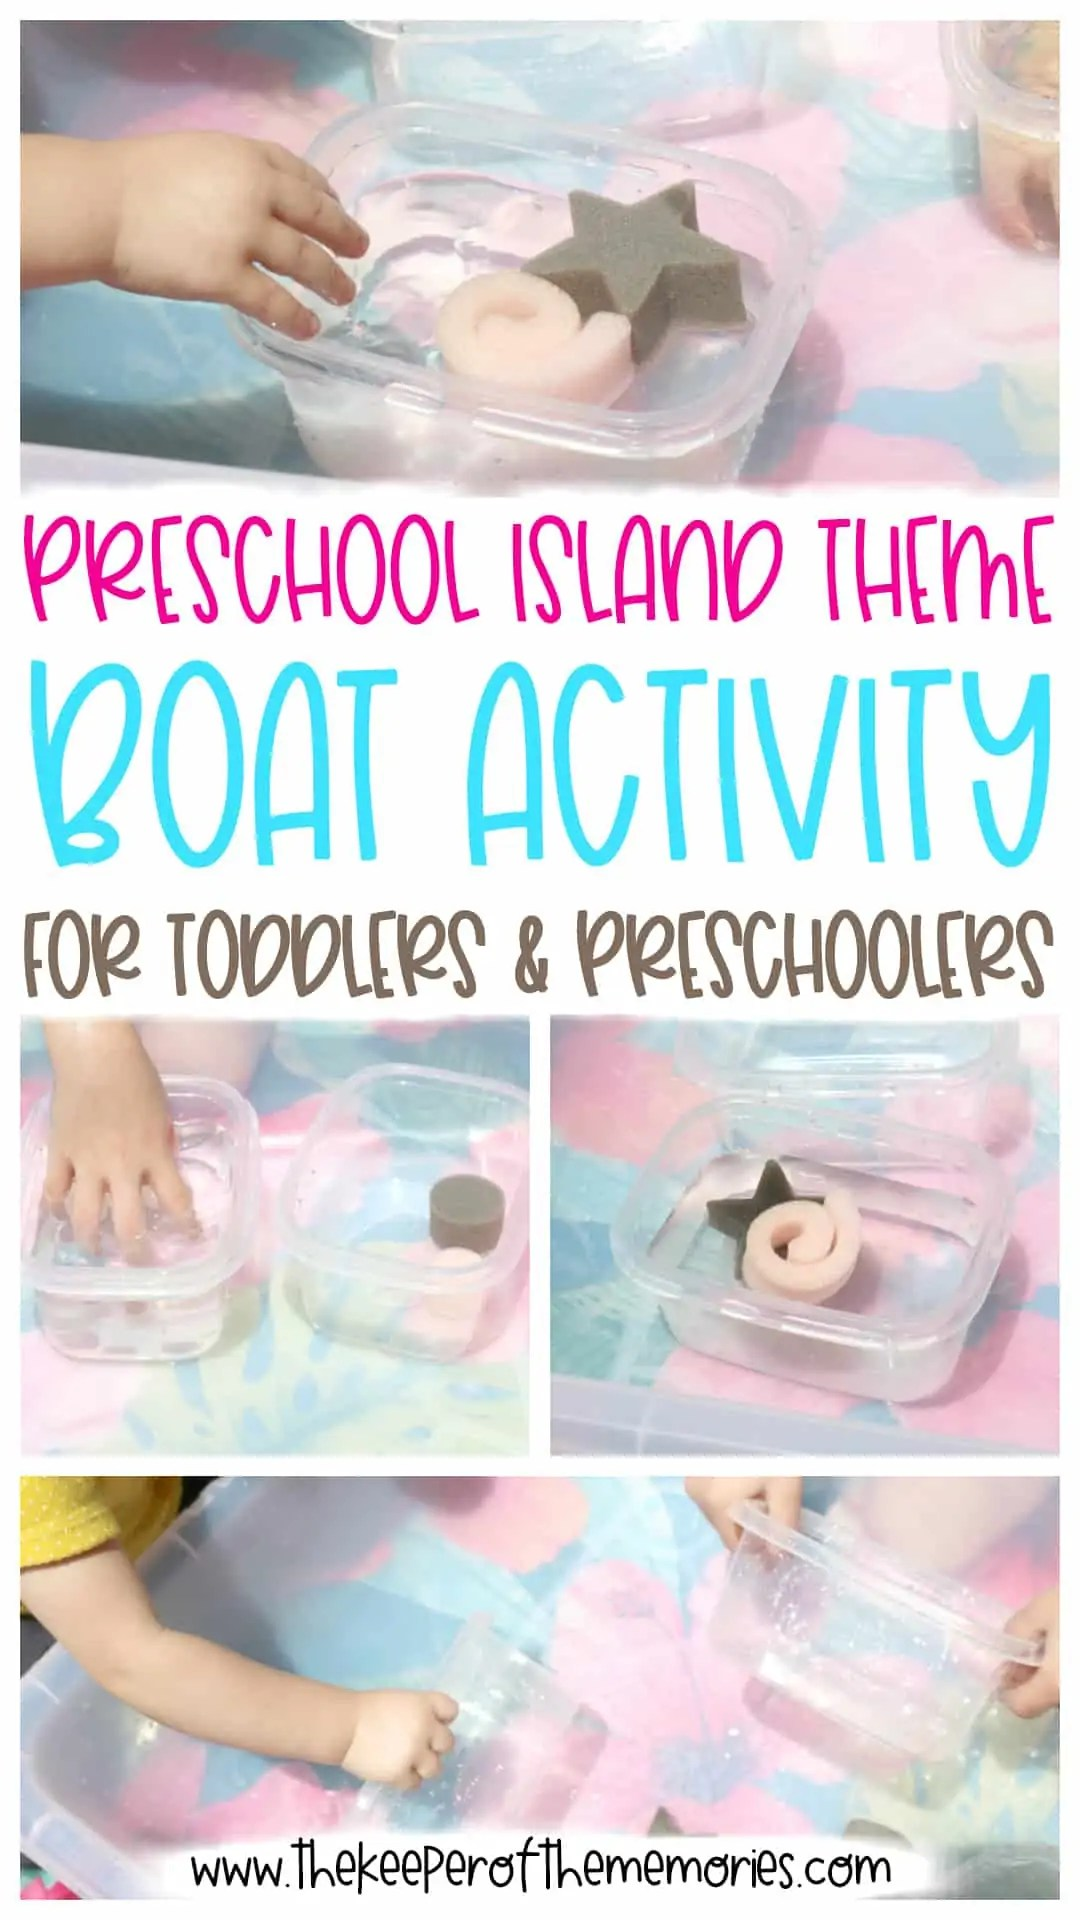 Preschool Island Theme Boat Activity For Toddlers